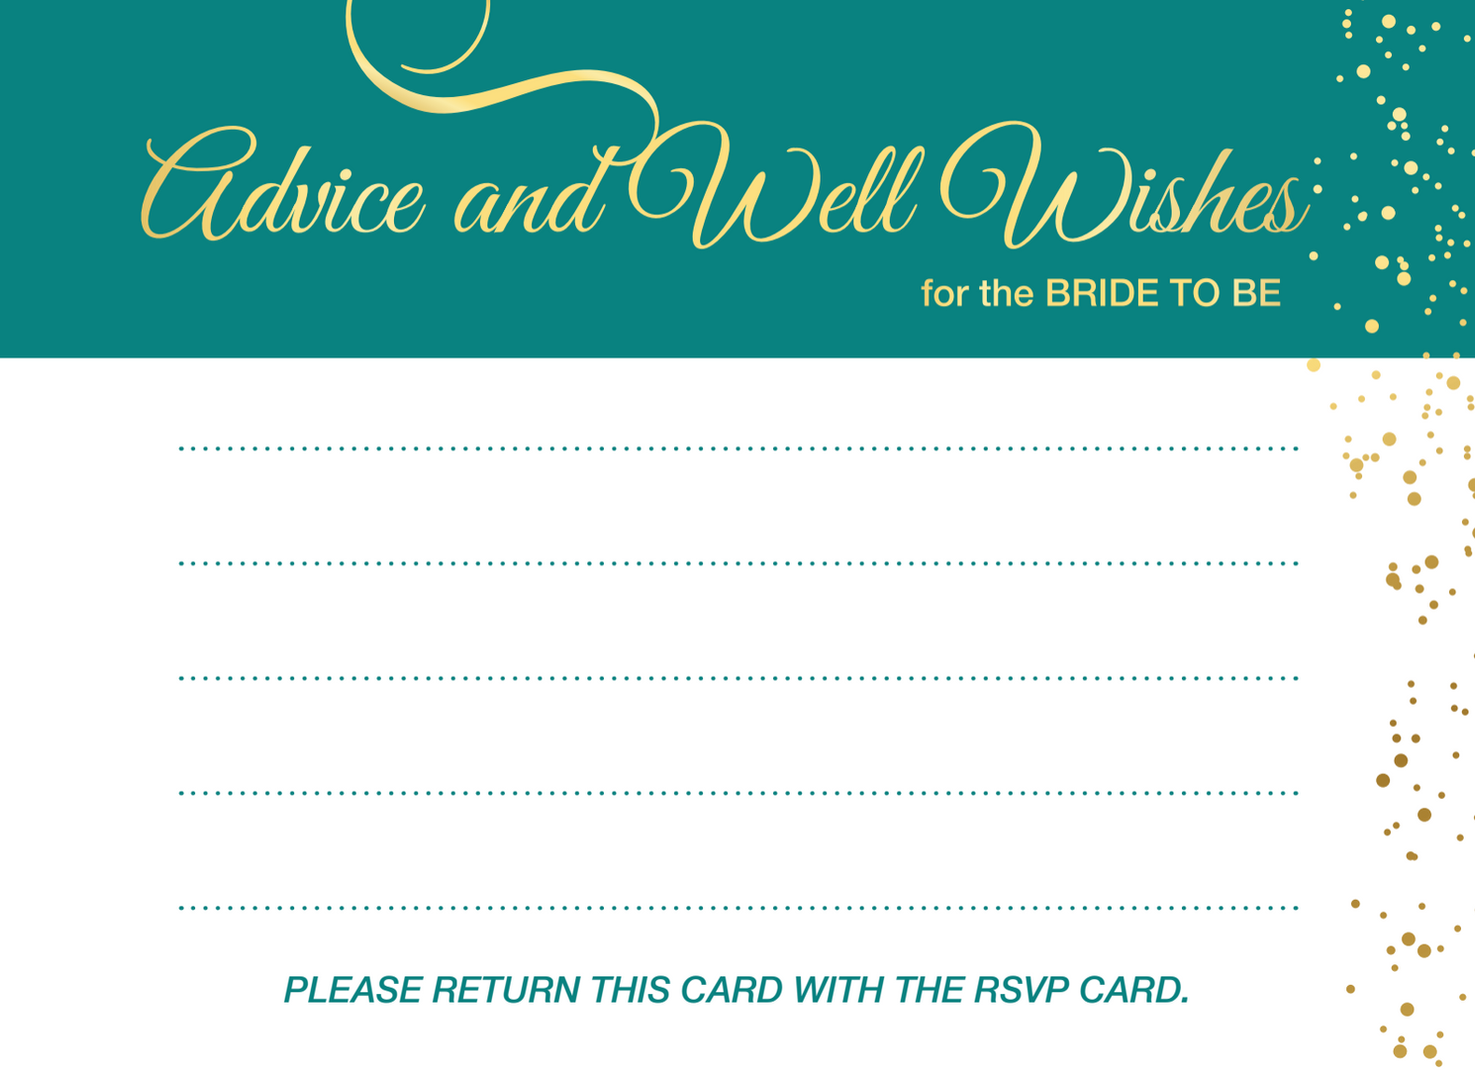 Advice/Well Wishes Card